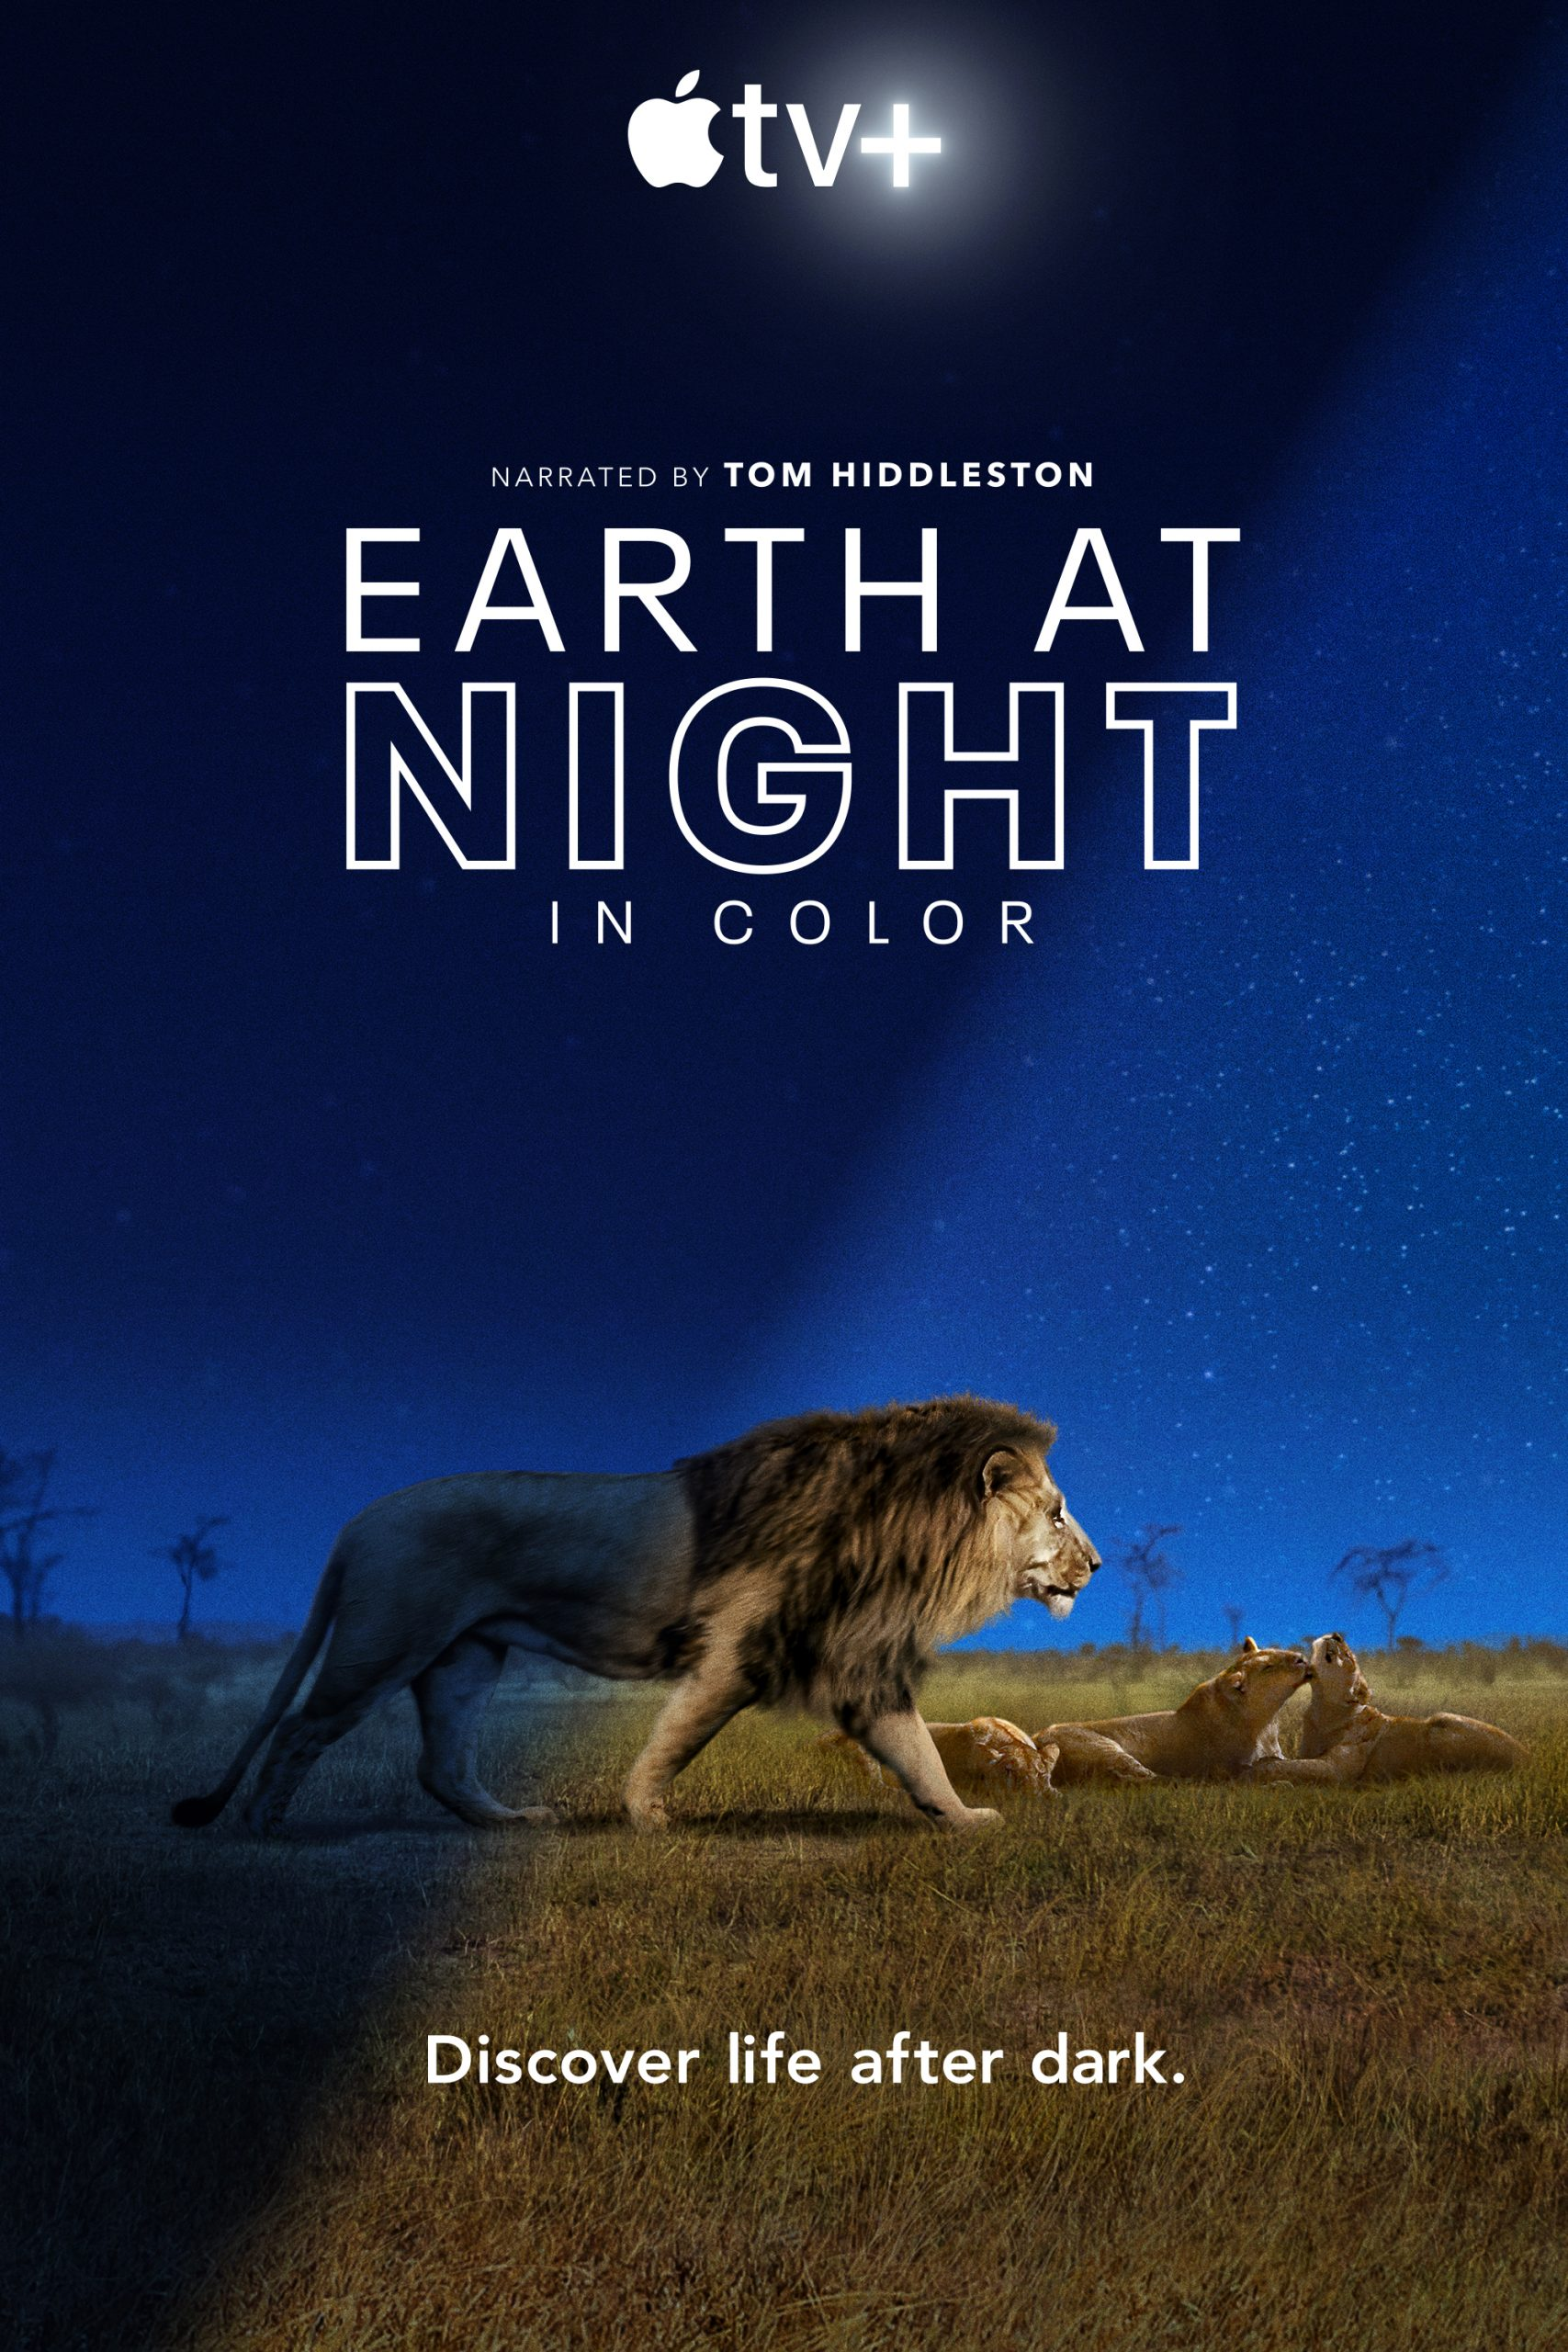 Earth at Night in Color S01 Ep 1 وثائقى